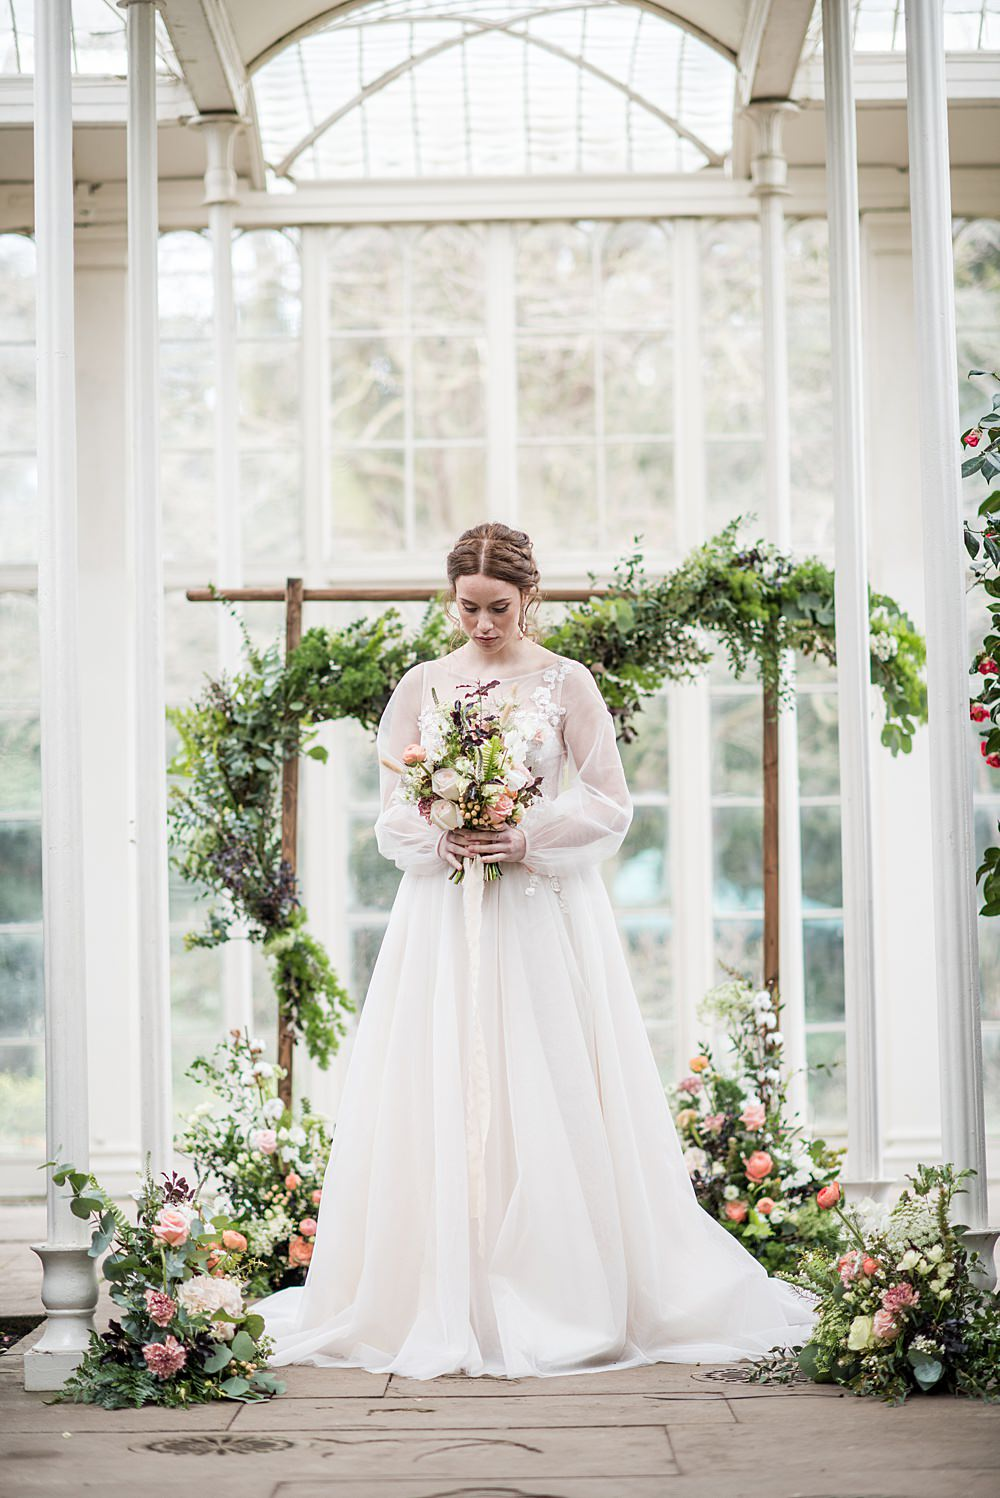 Peach Gold Wedding Ideas Jane Beadnell Photography Flower Arch Arbour Backdrop Floral Wild Natural Greenery Foliage